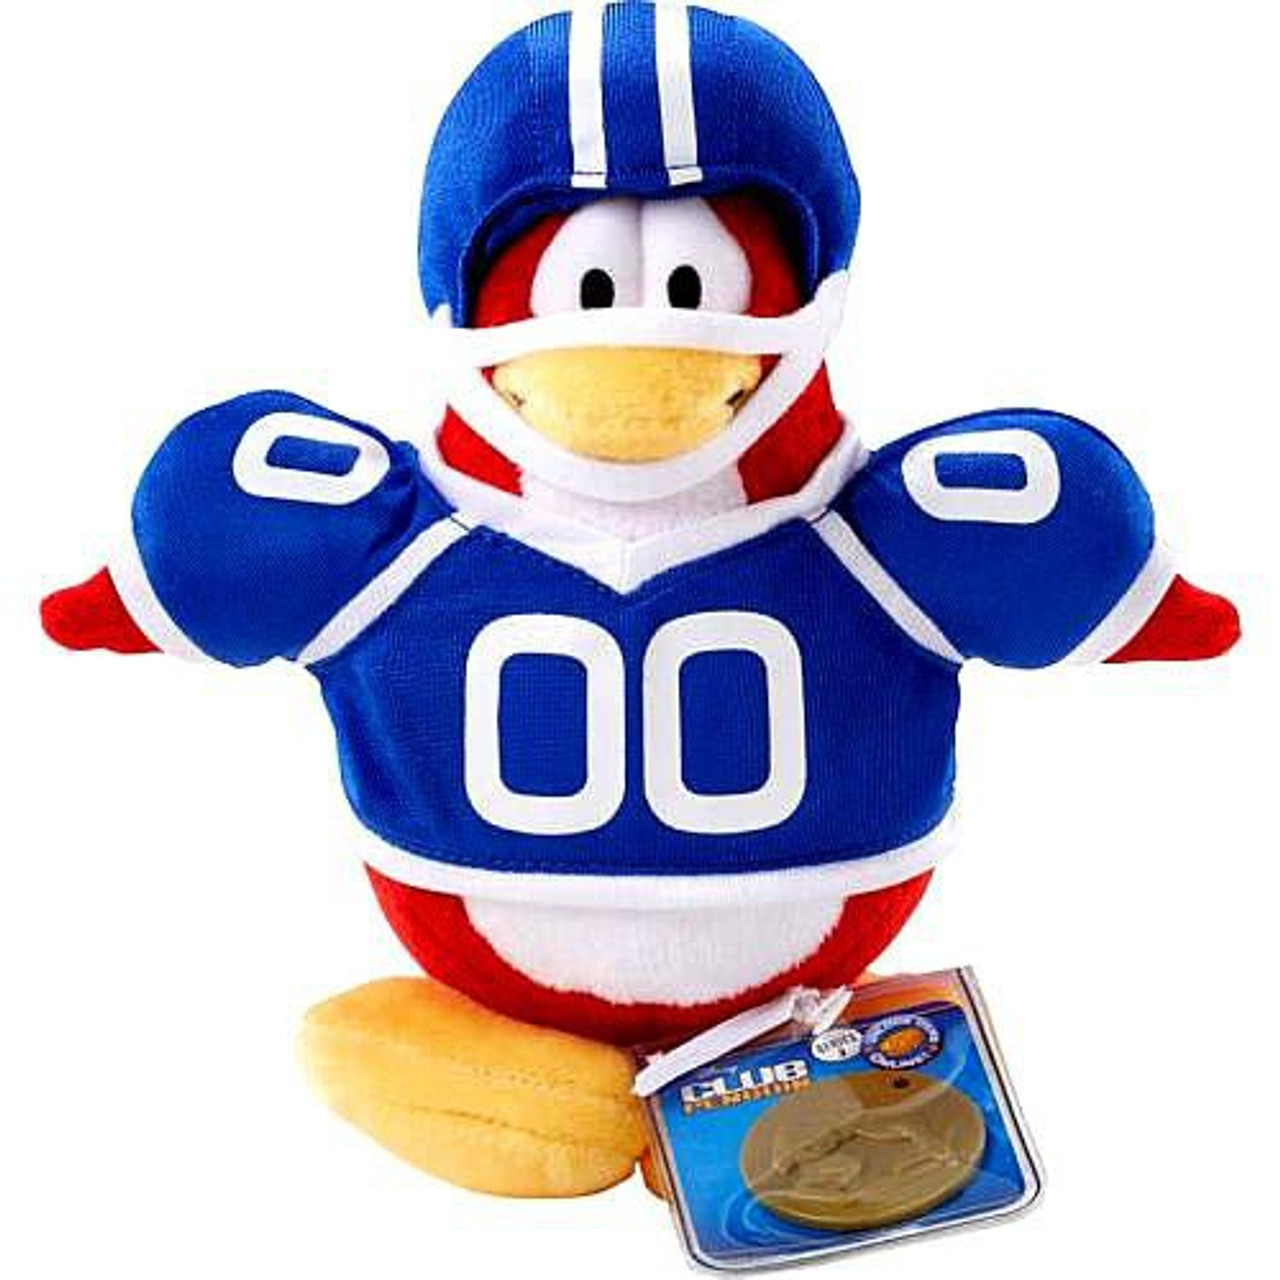 Club Penguin Series 2 Football Player 6.5-Inch Plush Figure [Blue Uniform]